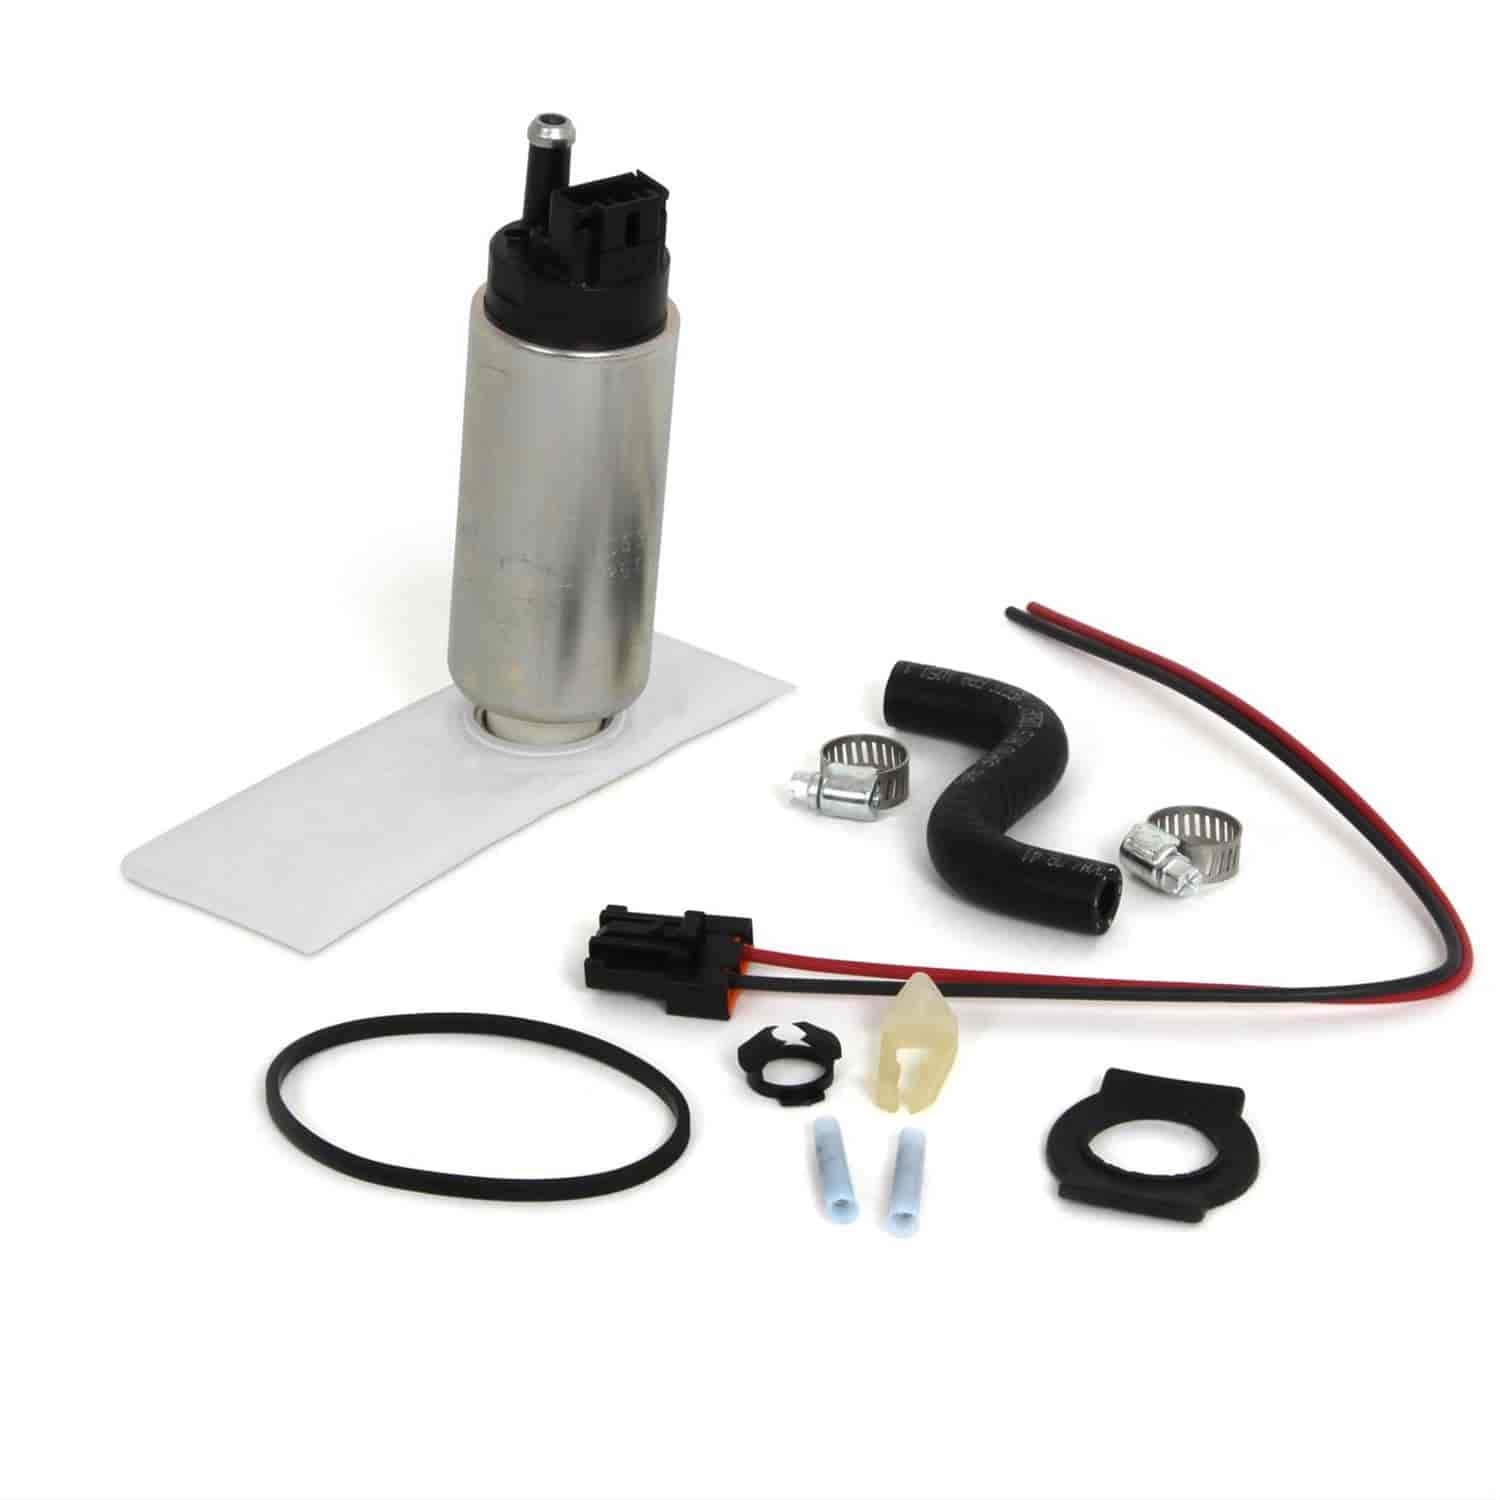 BBK Performance Products 1622 - BBK High-Volume OEM Style Electric Fuel Pump Kits